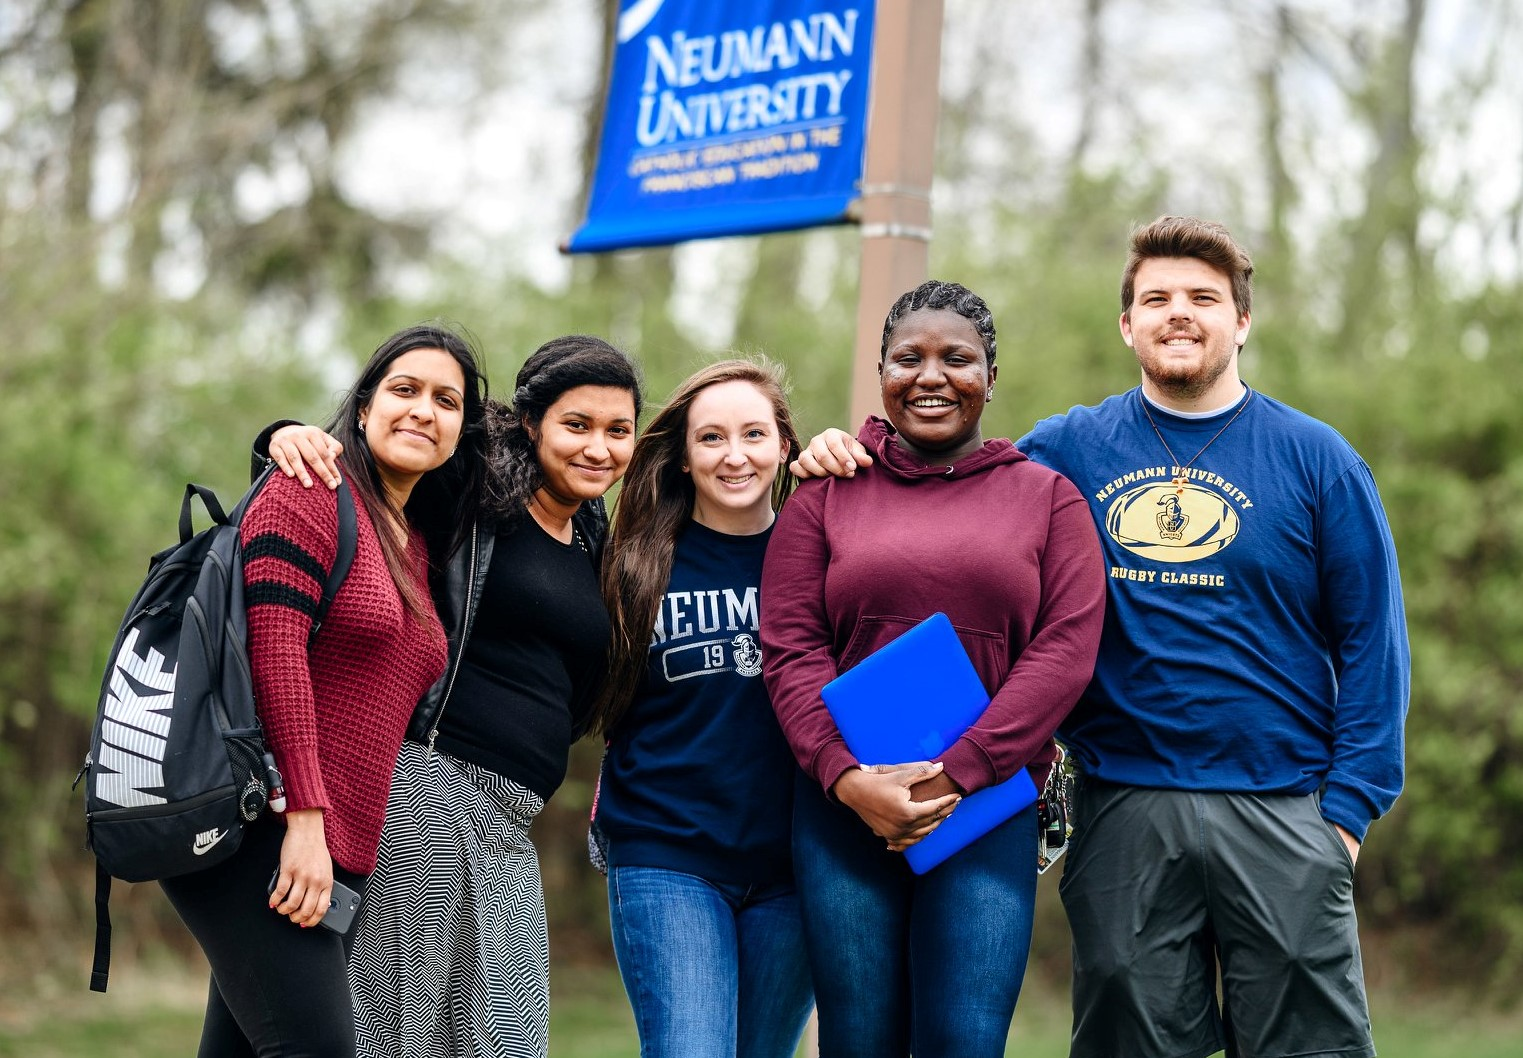 VISTA Careers – Neumann University